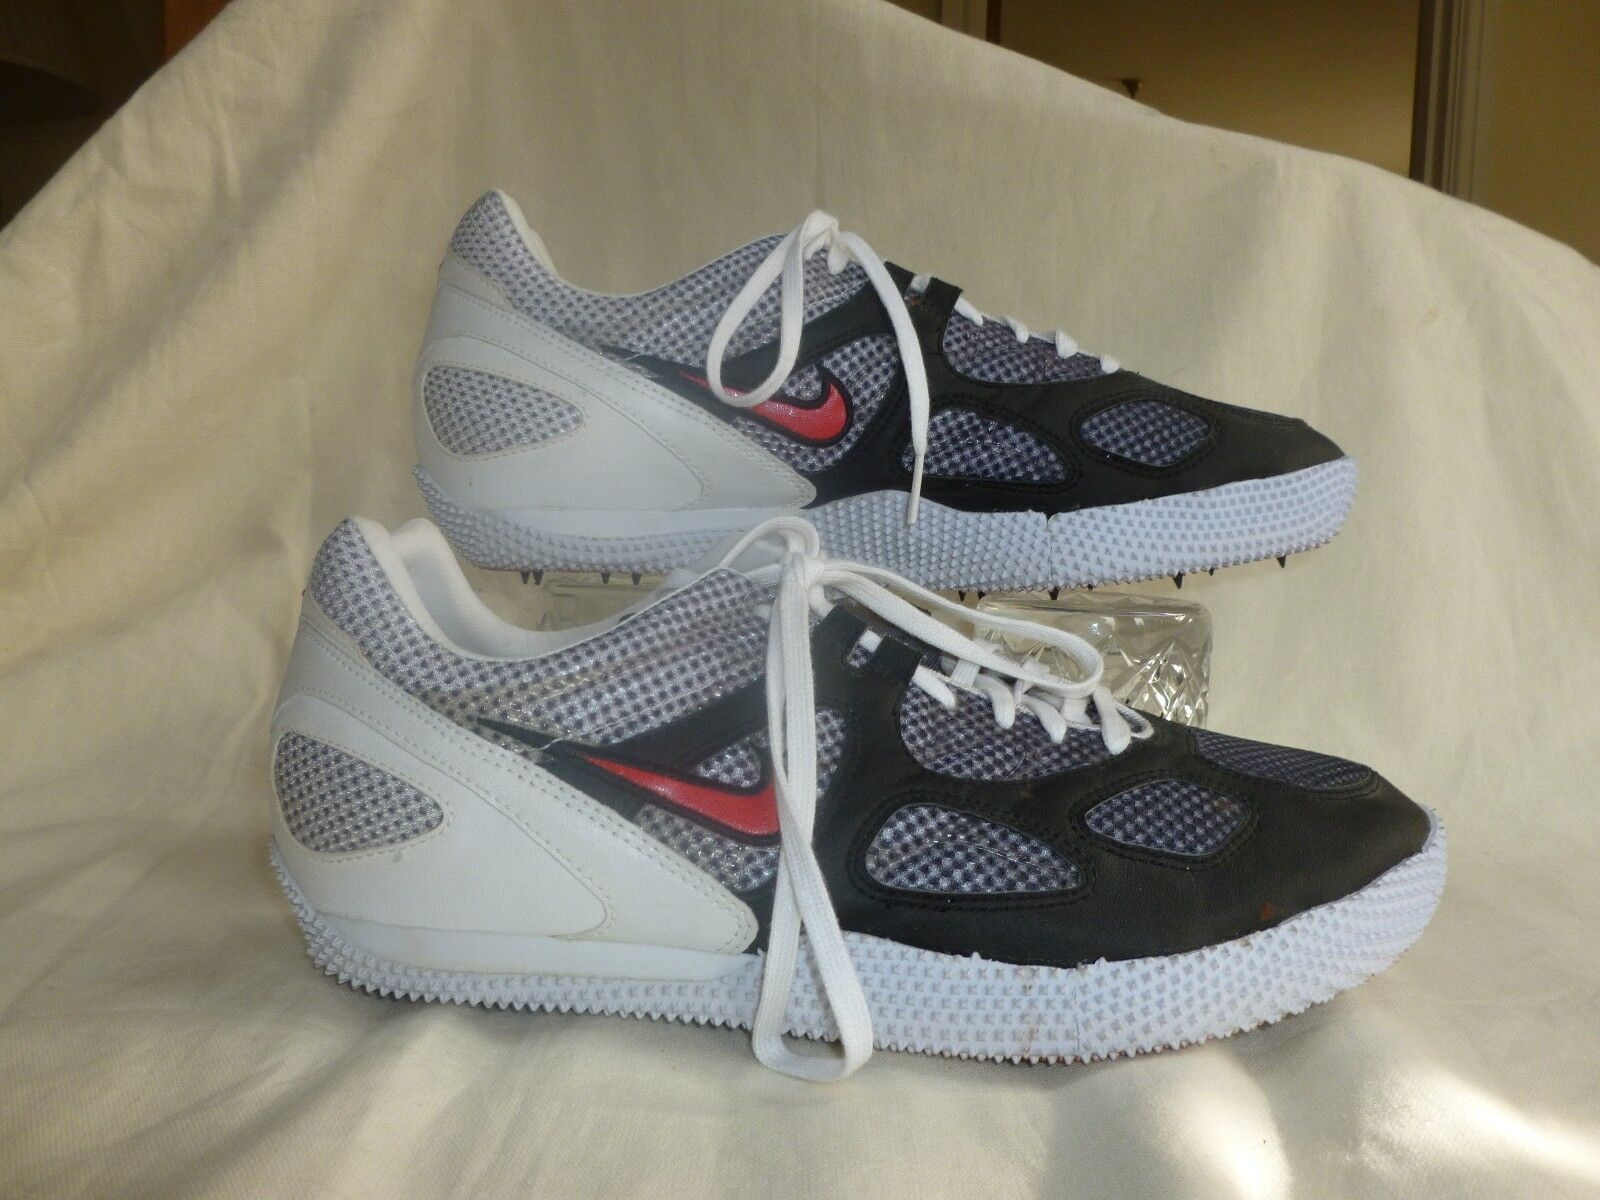 NIKE FOR BOWERMAN TRACK AND FIELD RUNNING SPIKES SIZE USA 12.5 best-selling model of the brand